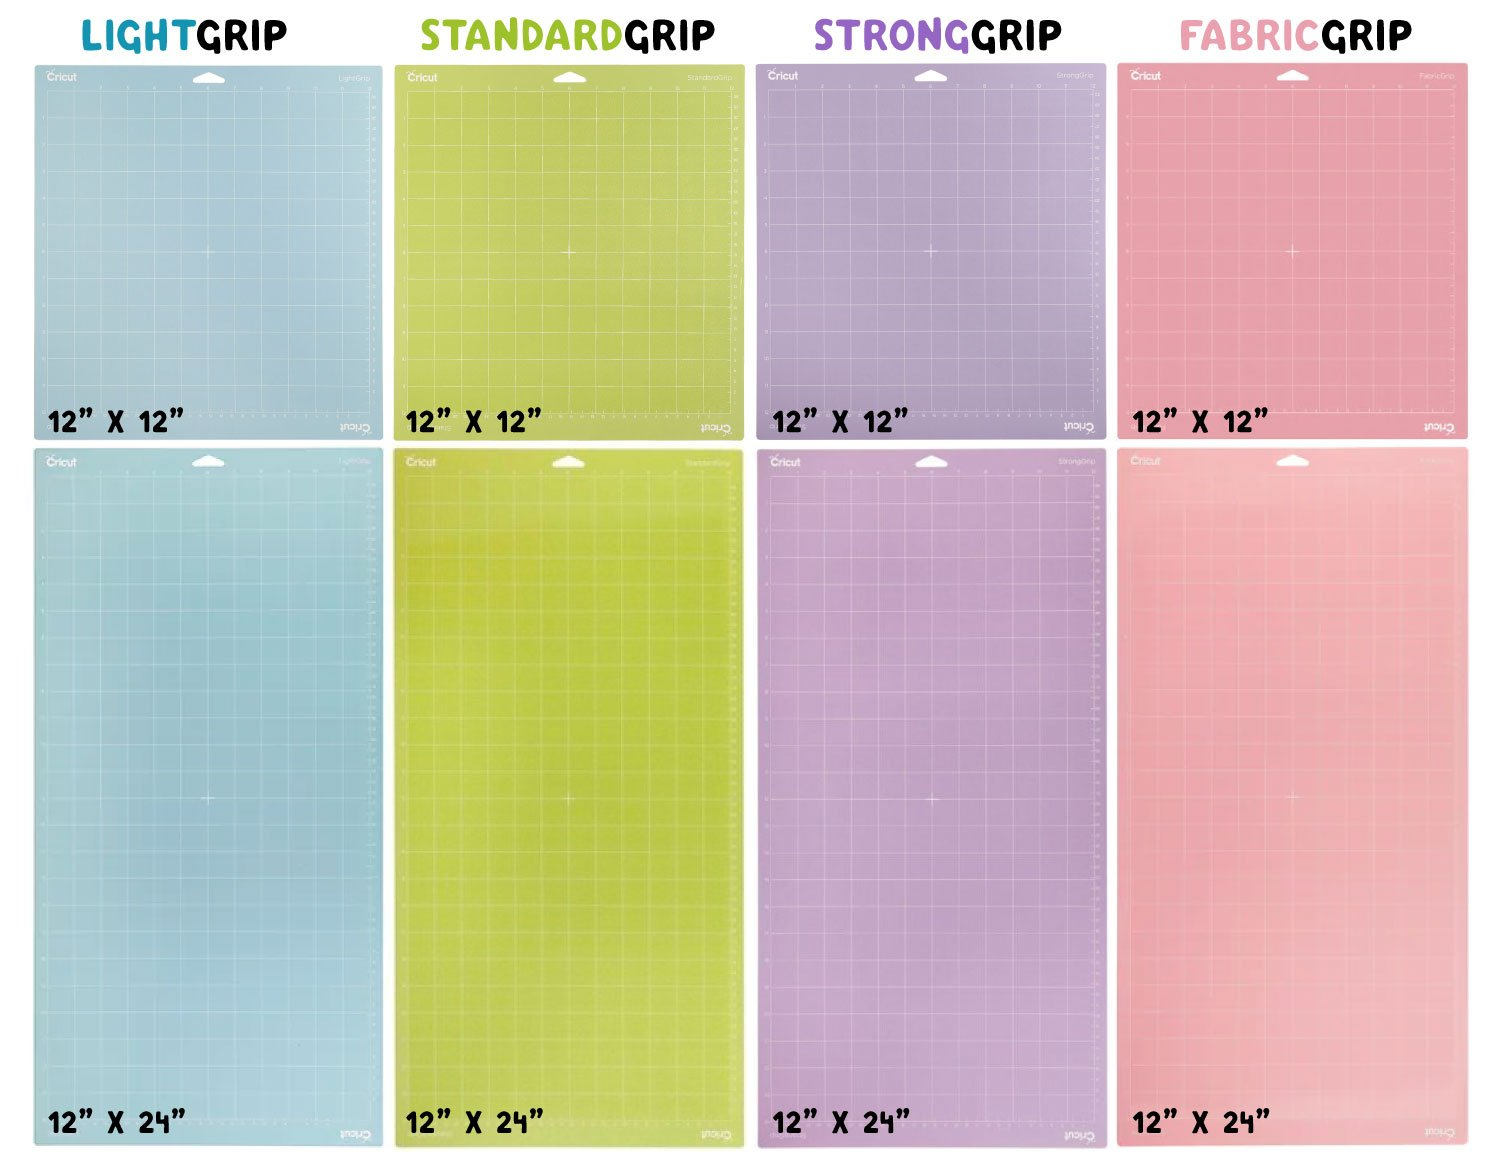 Cricut Explore and Maker mats with sizes